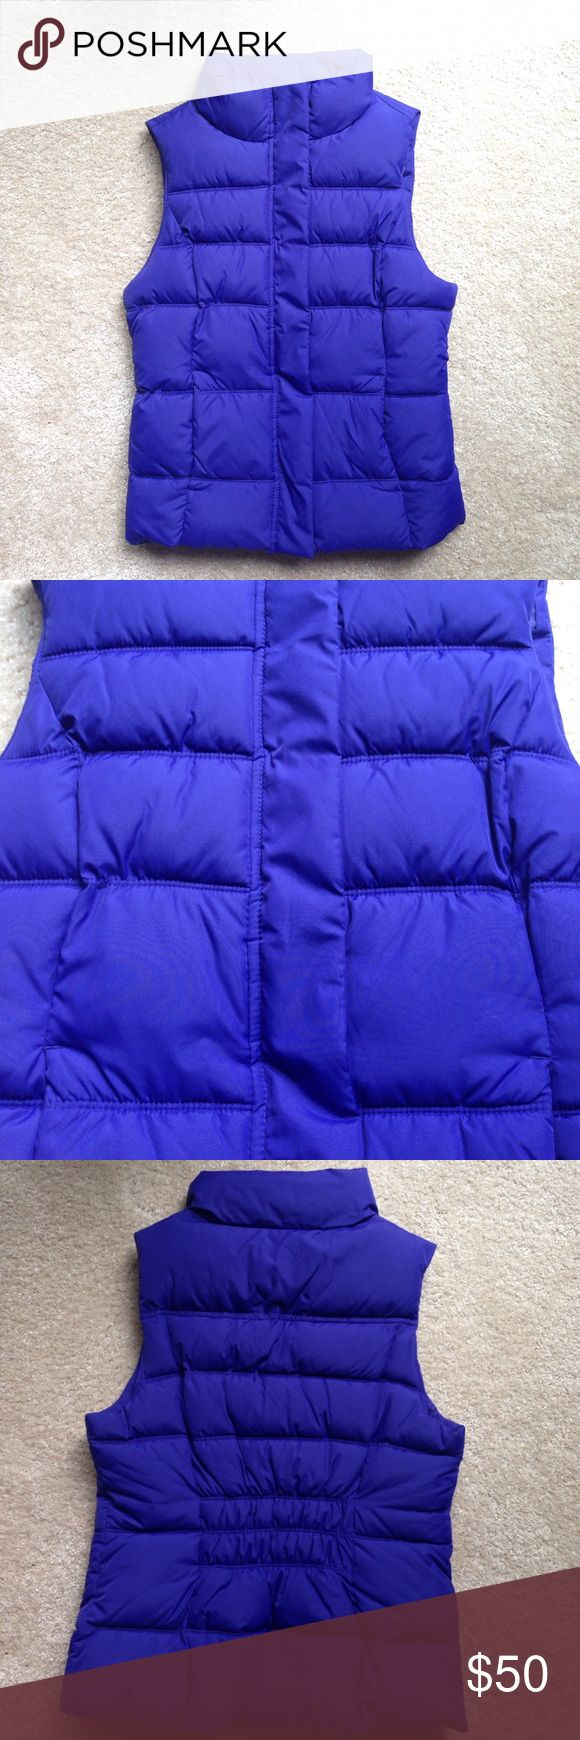 Blue vest Cobalt blue vest. Two pockets in the front. New with the tags! GAP Jackets & Coats Vests